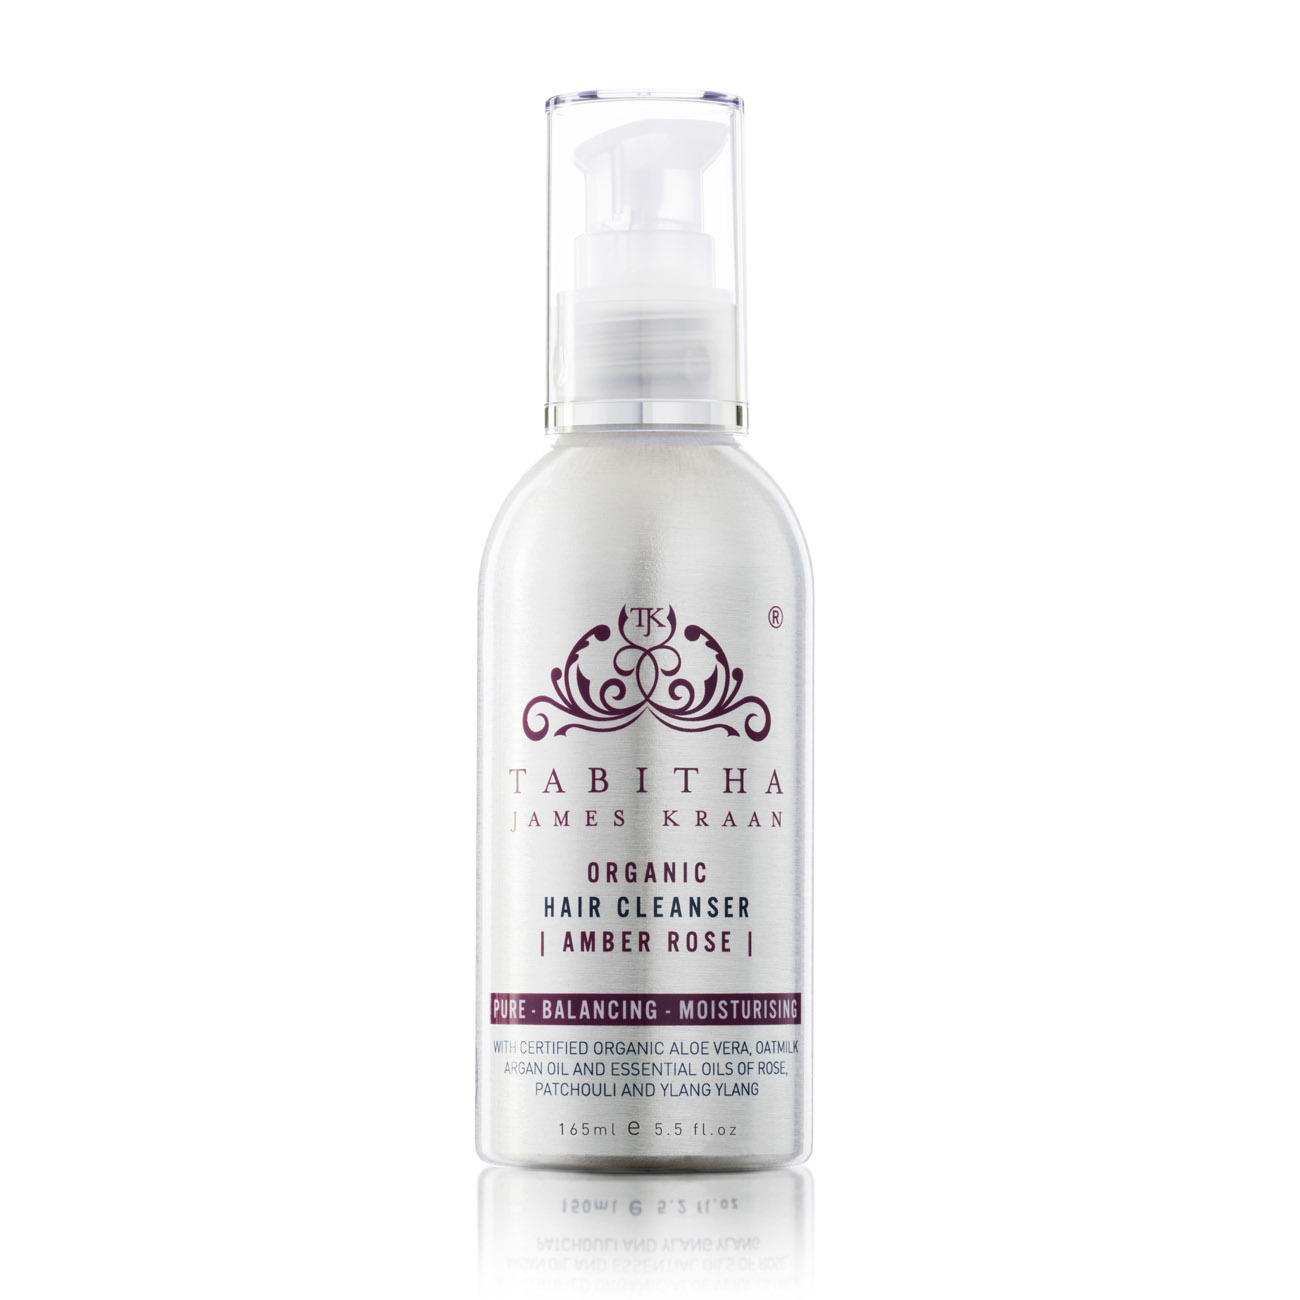 Tabitha James Kraan Tabitha James Kraan Haar Cleanser amber rose 165 ML